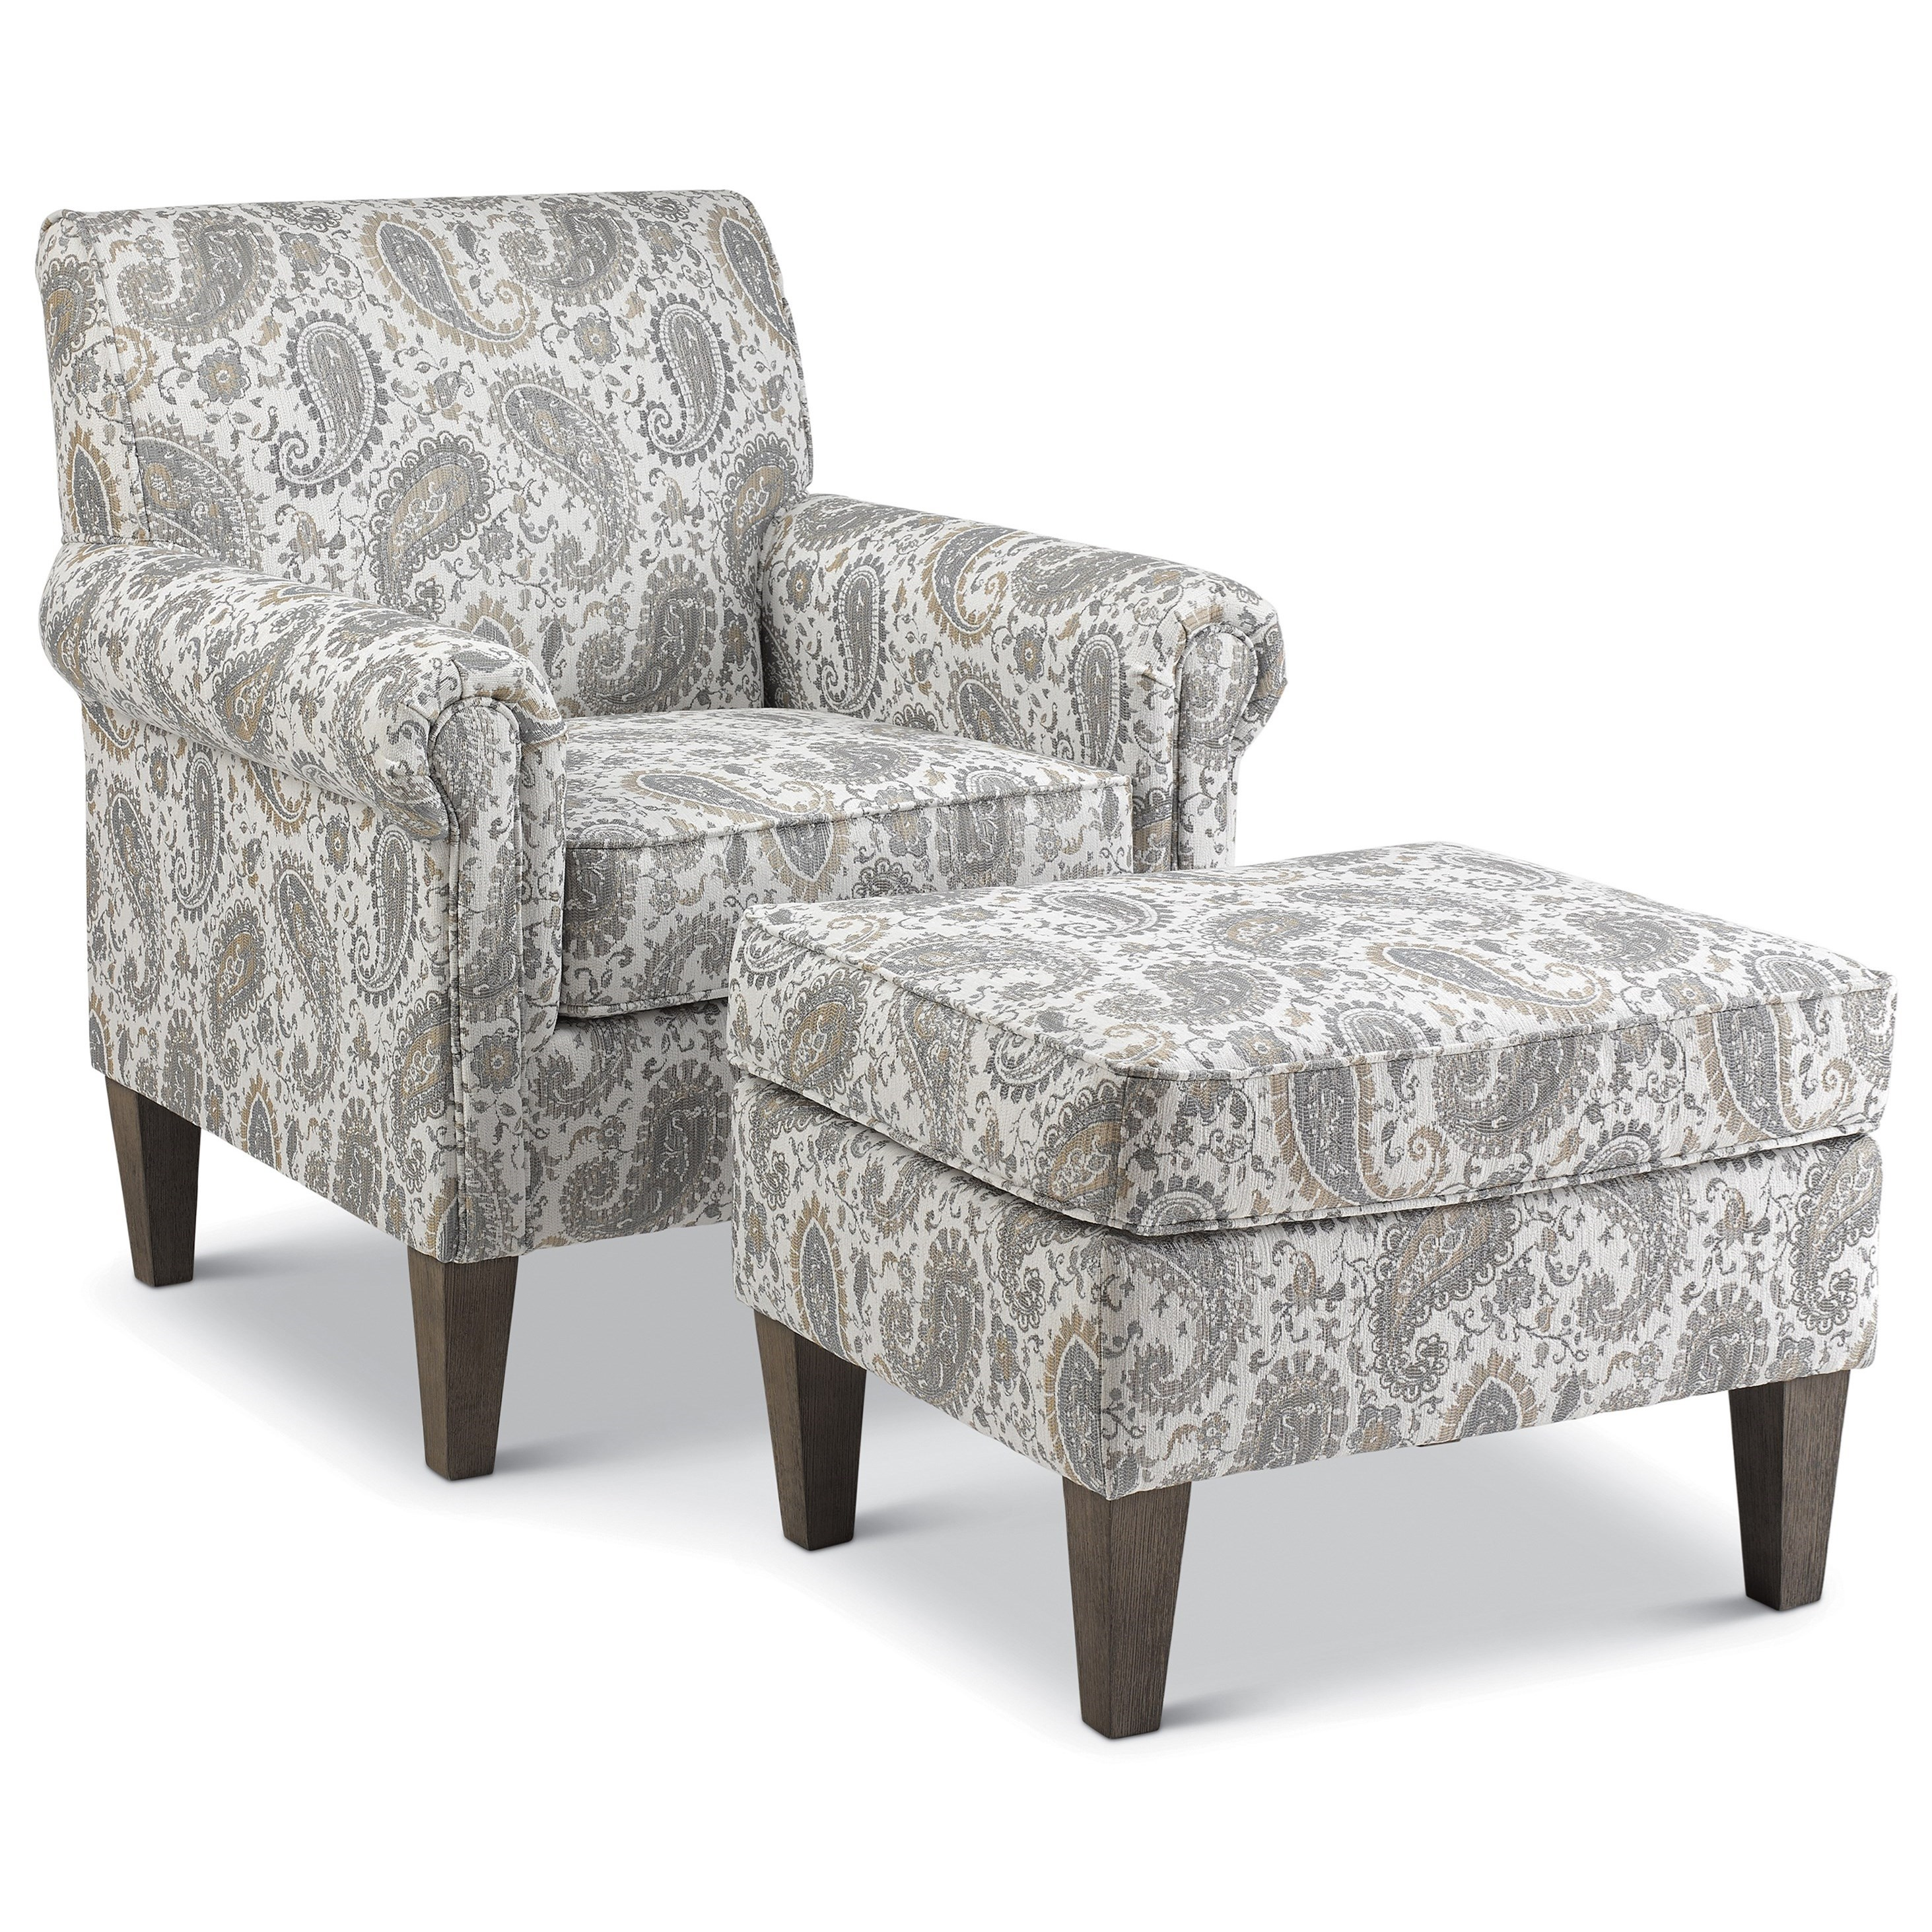 McBride Chair & Ottoman Set by Best Home Furnishings at Godby Home Furnishings